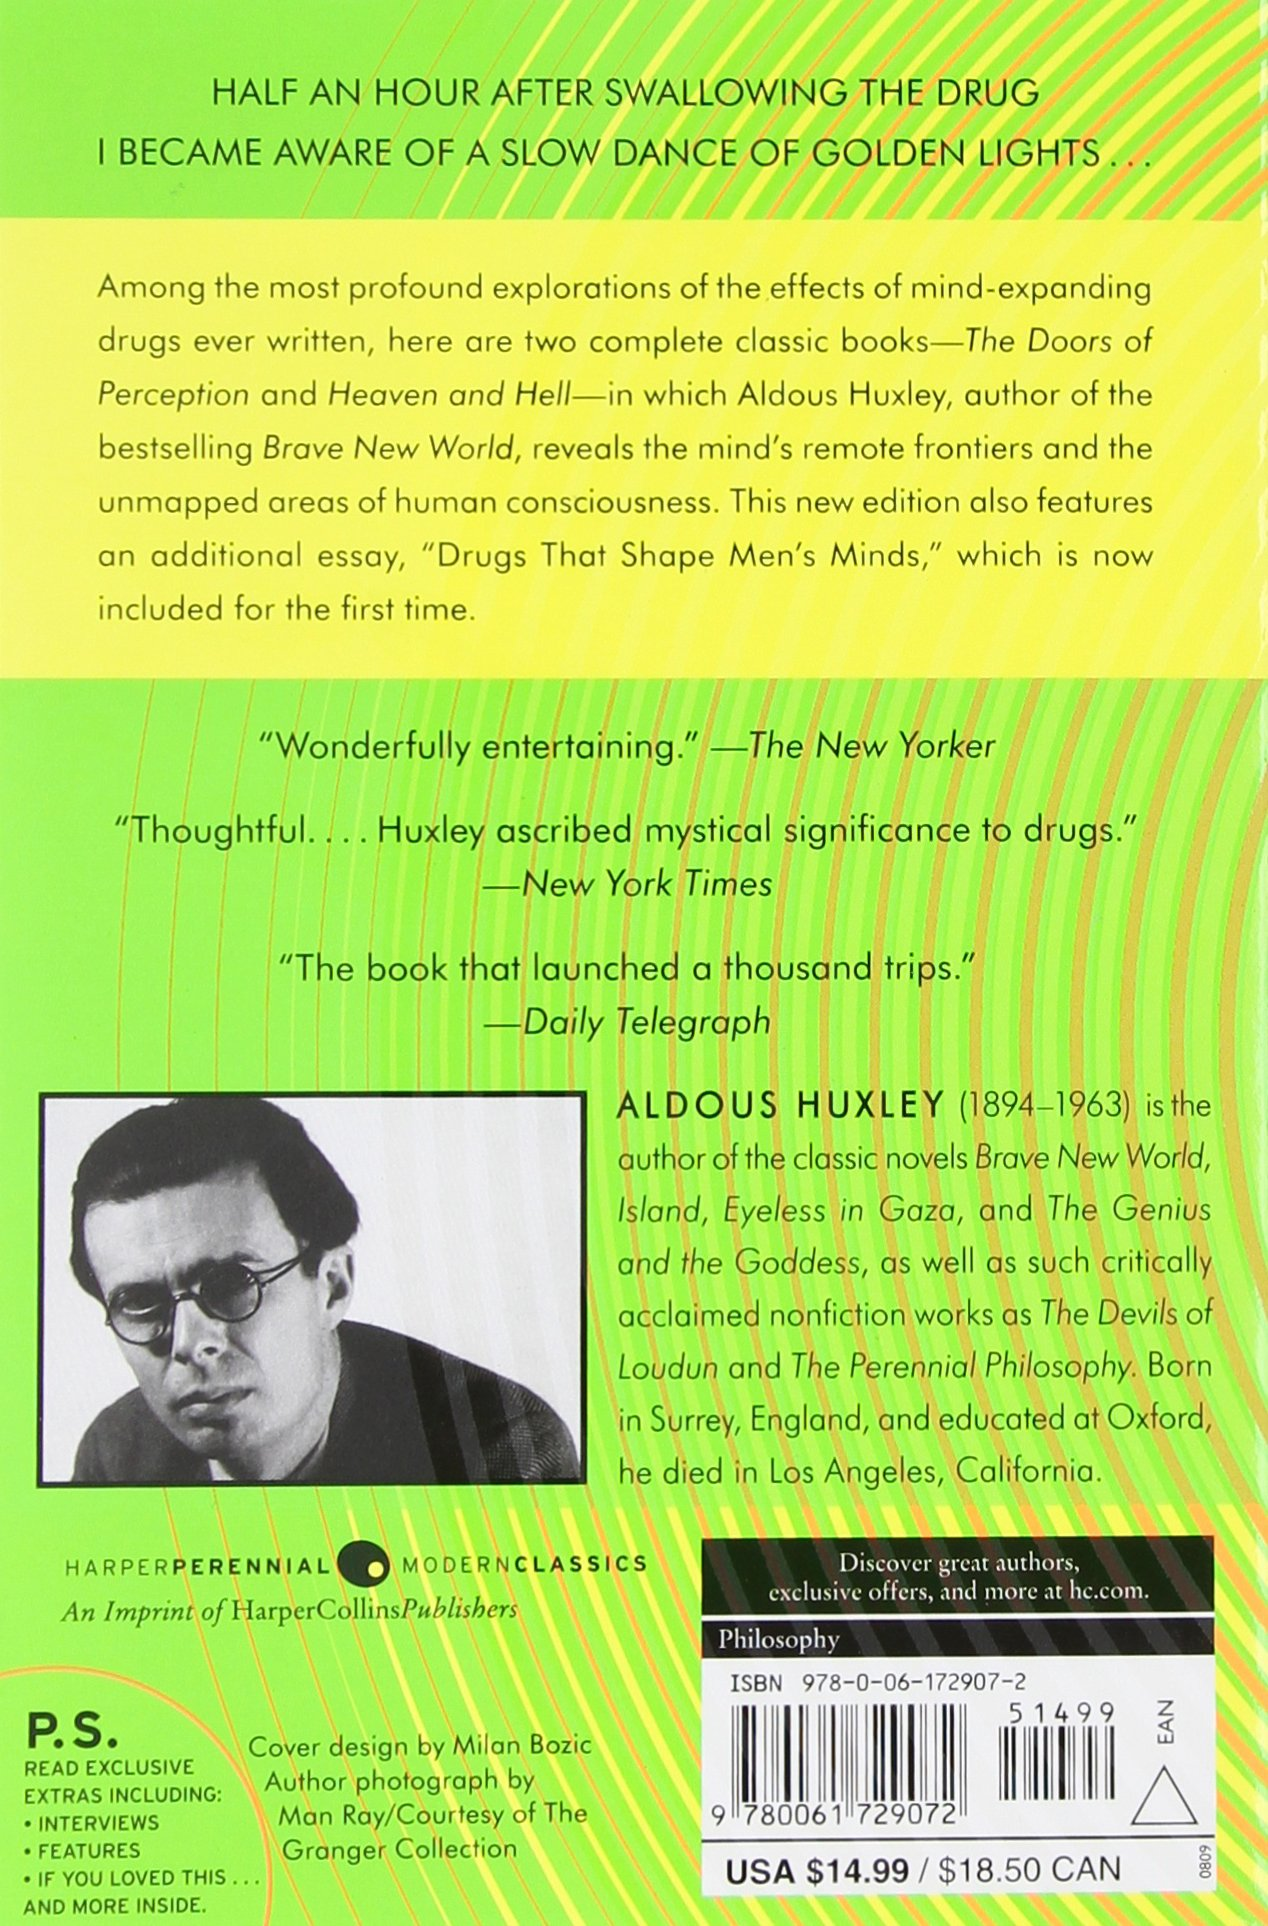 the doors of perception and heaven and hell aldous huxley the doors of perception and heaven and hell aldous huxley 9780061729072 com books